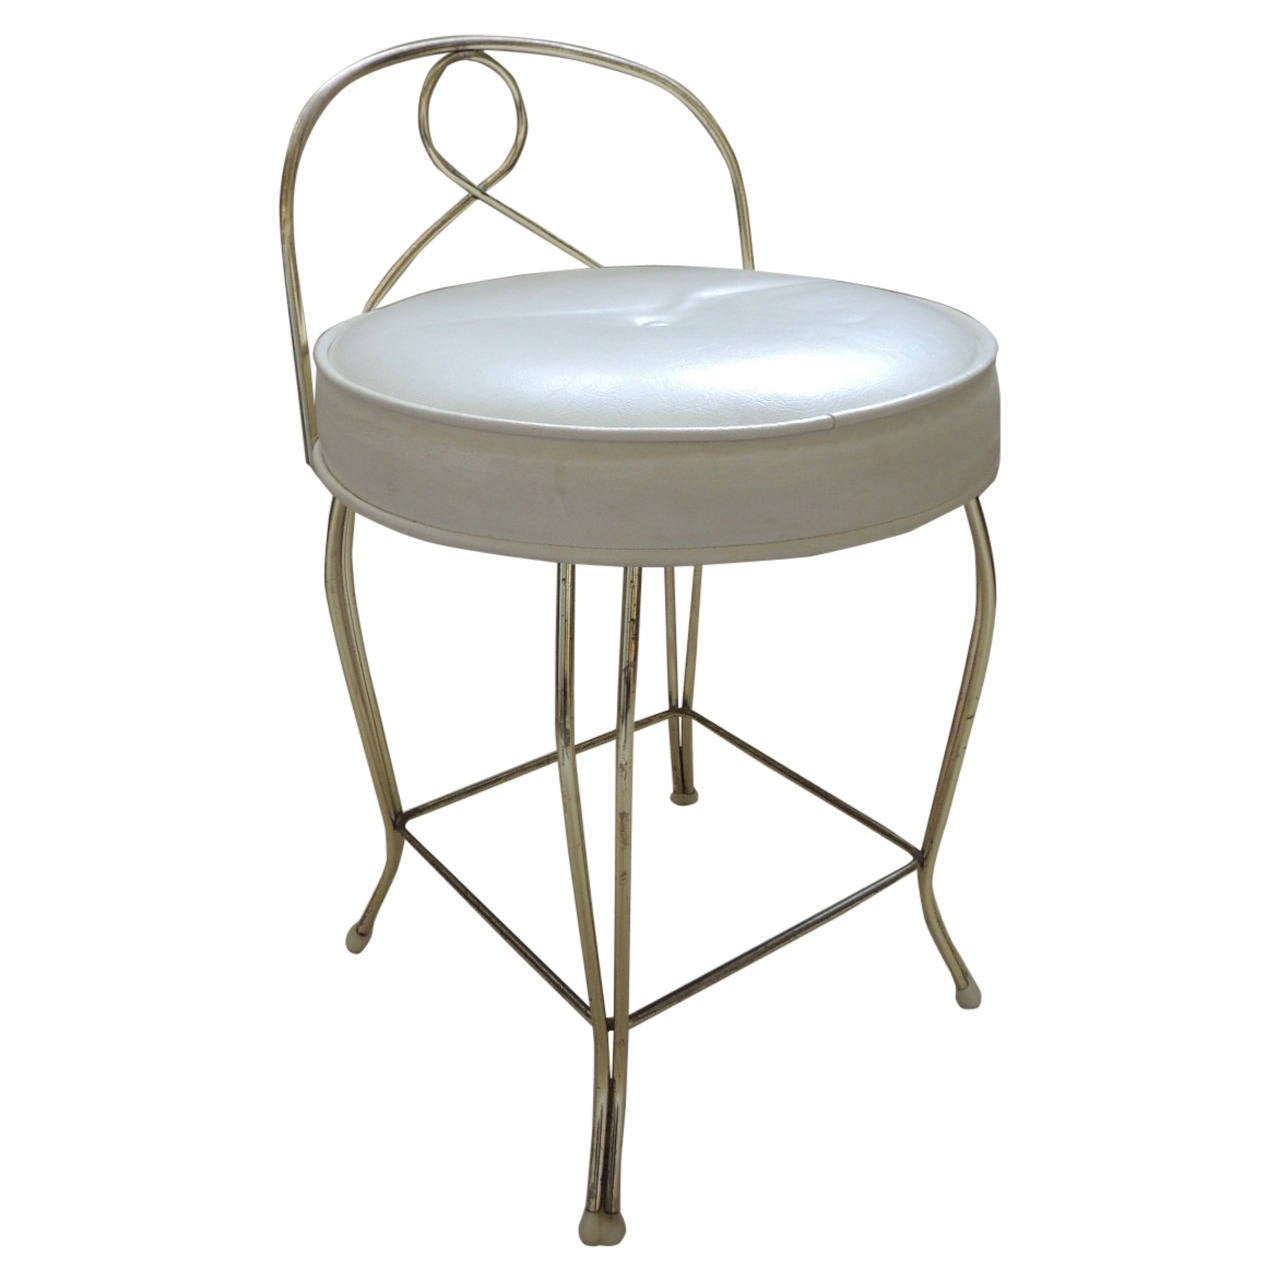 Vintage Round Brass Vanity Stool With Upholstered Seat For